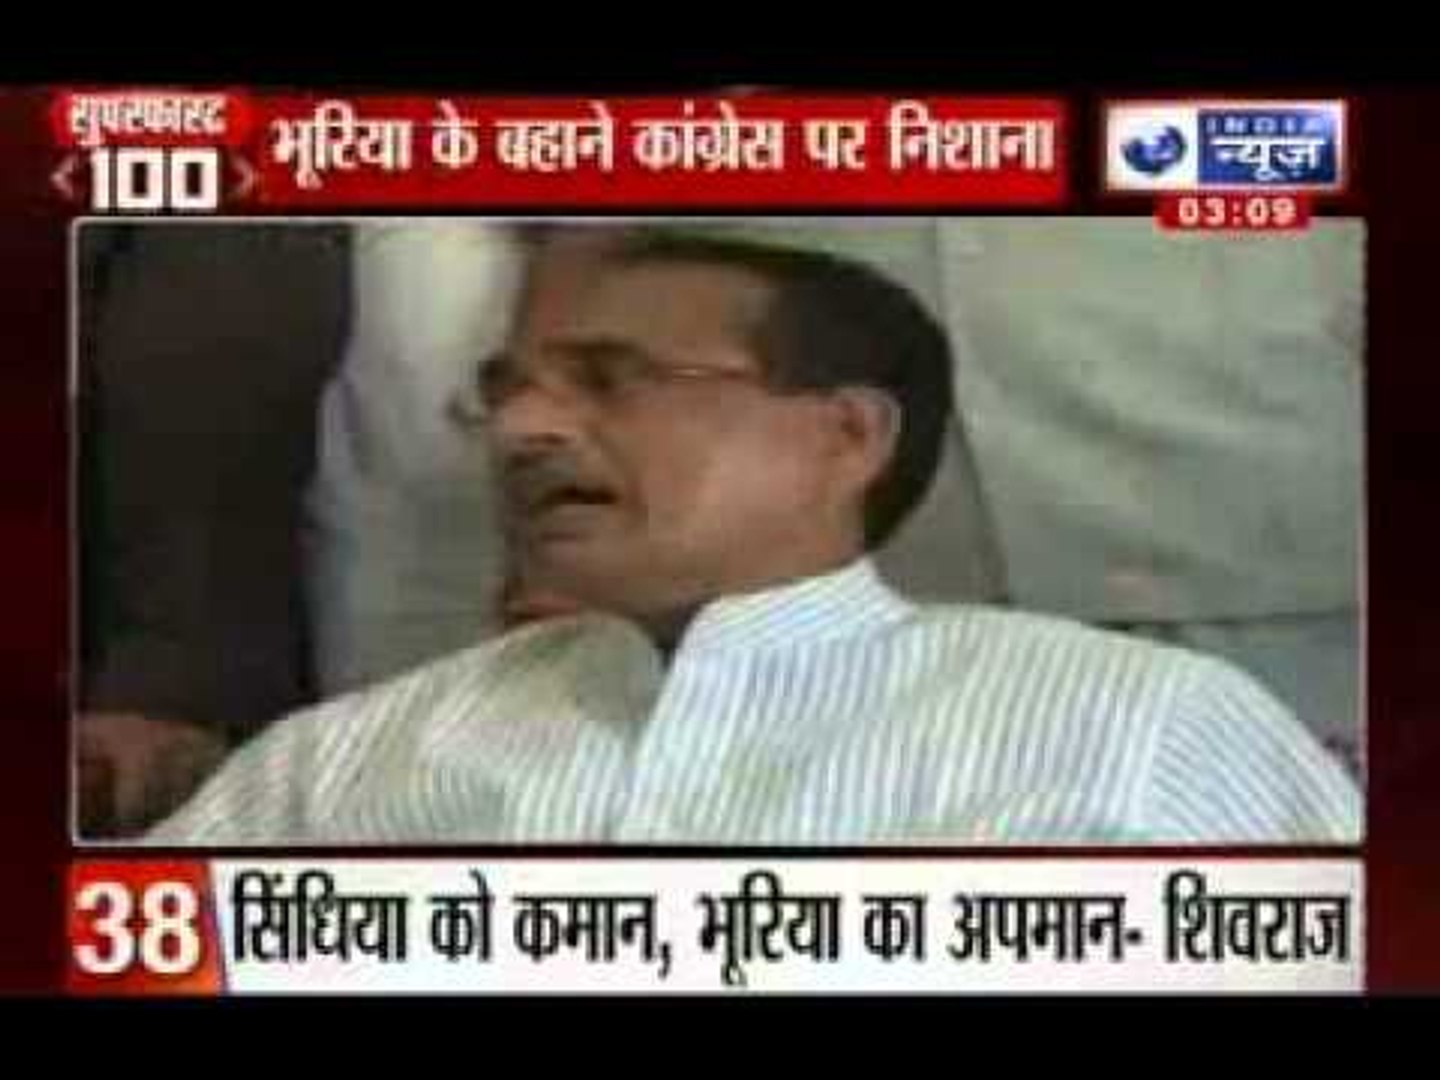 India News :  Super Fast 100 News on 5th September